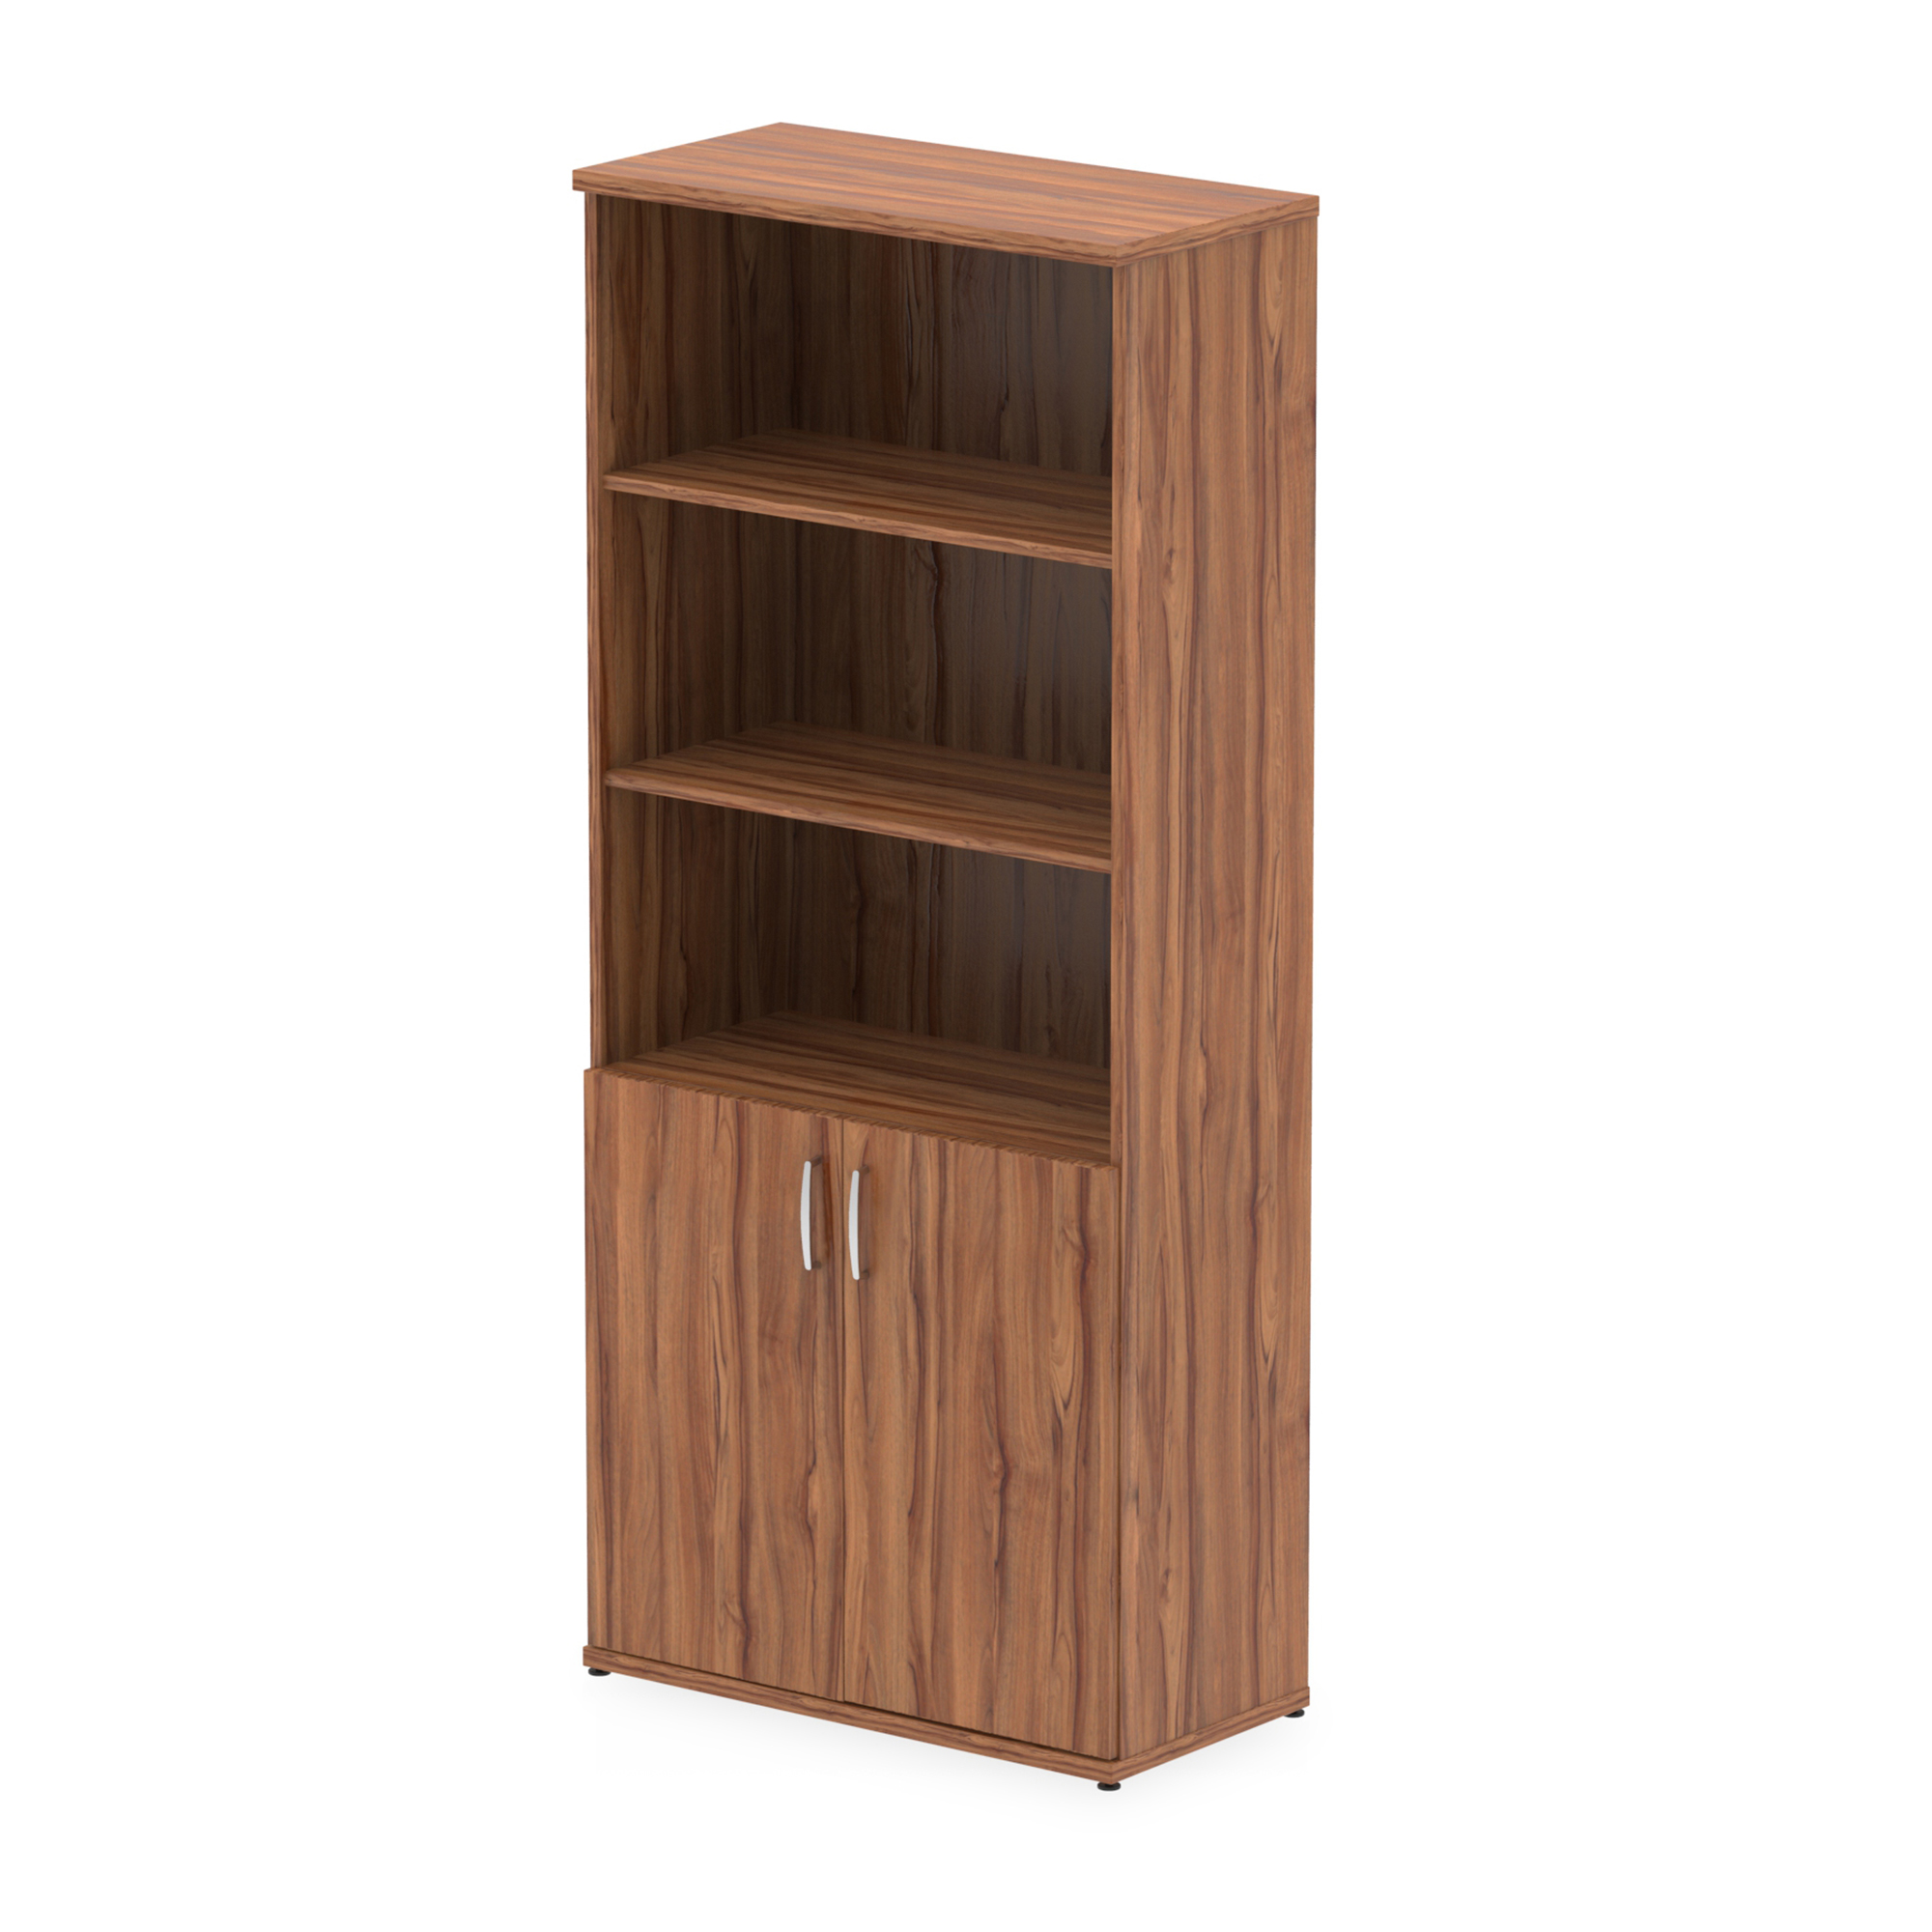 Trexus Cupboard Open Shelves 2000x800x400mm Walnut Ref I000107